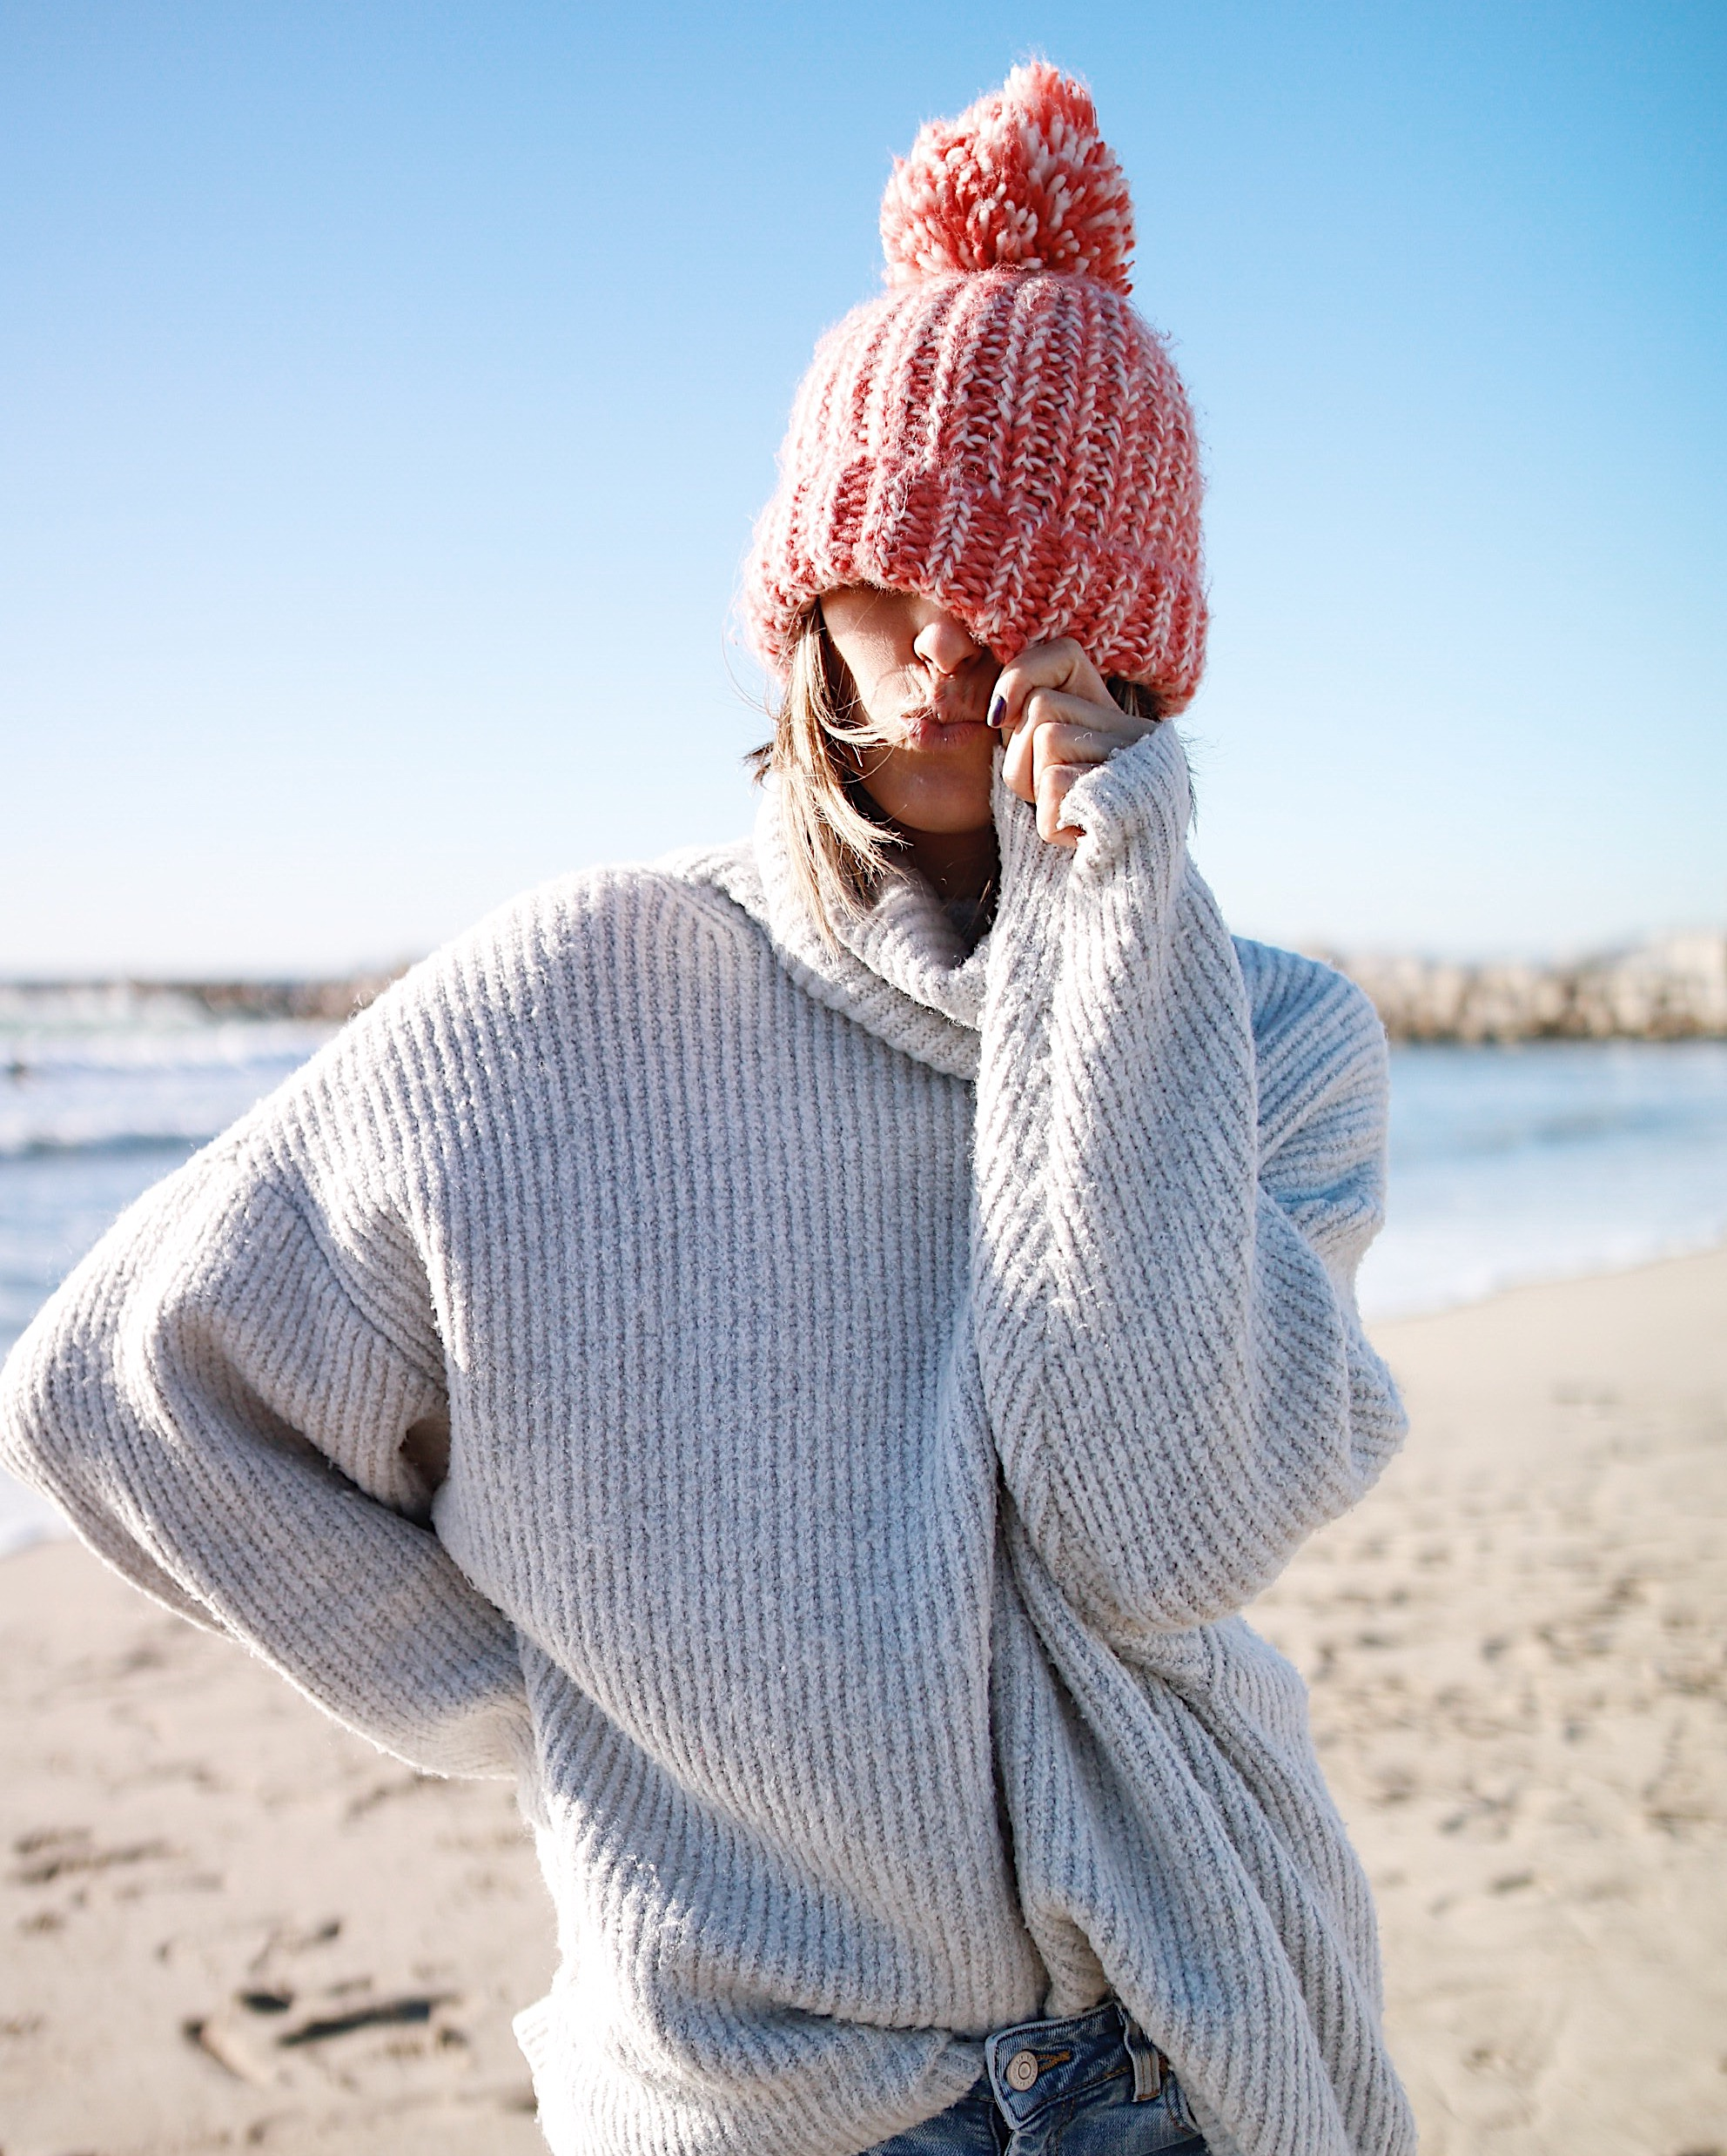 BEACHDAY, oversize int sweater, bonnet orse, beach girl